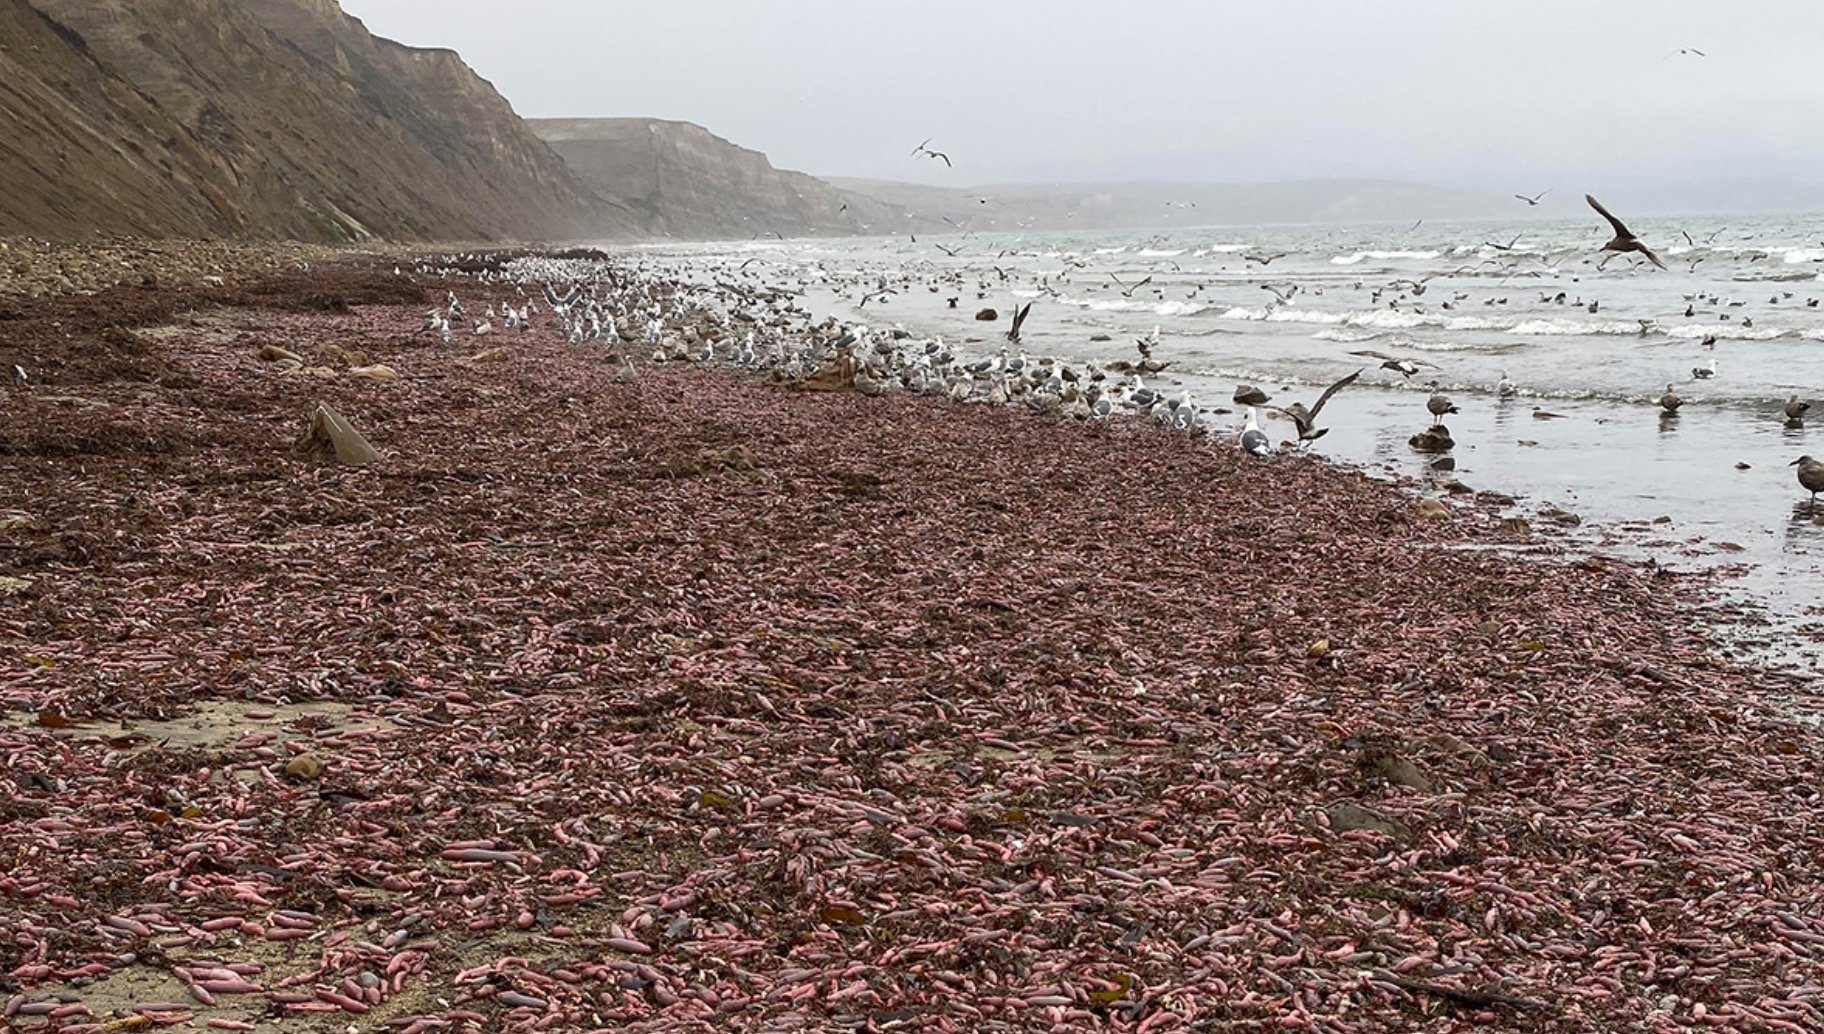 Naturally, 2019 Closes With Thousands Of 10-Inch Pulsing 'Penis Fish' Stranded On A California Beach